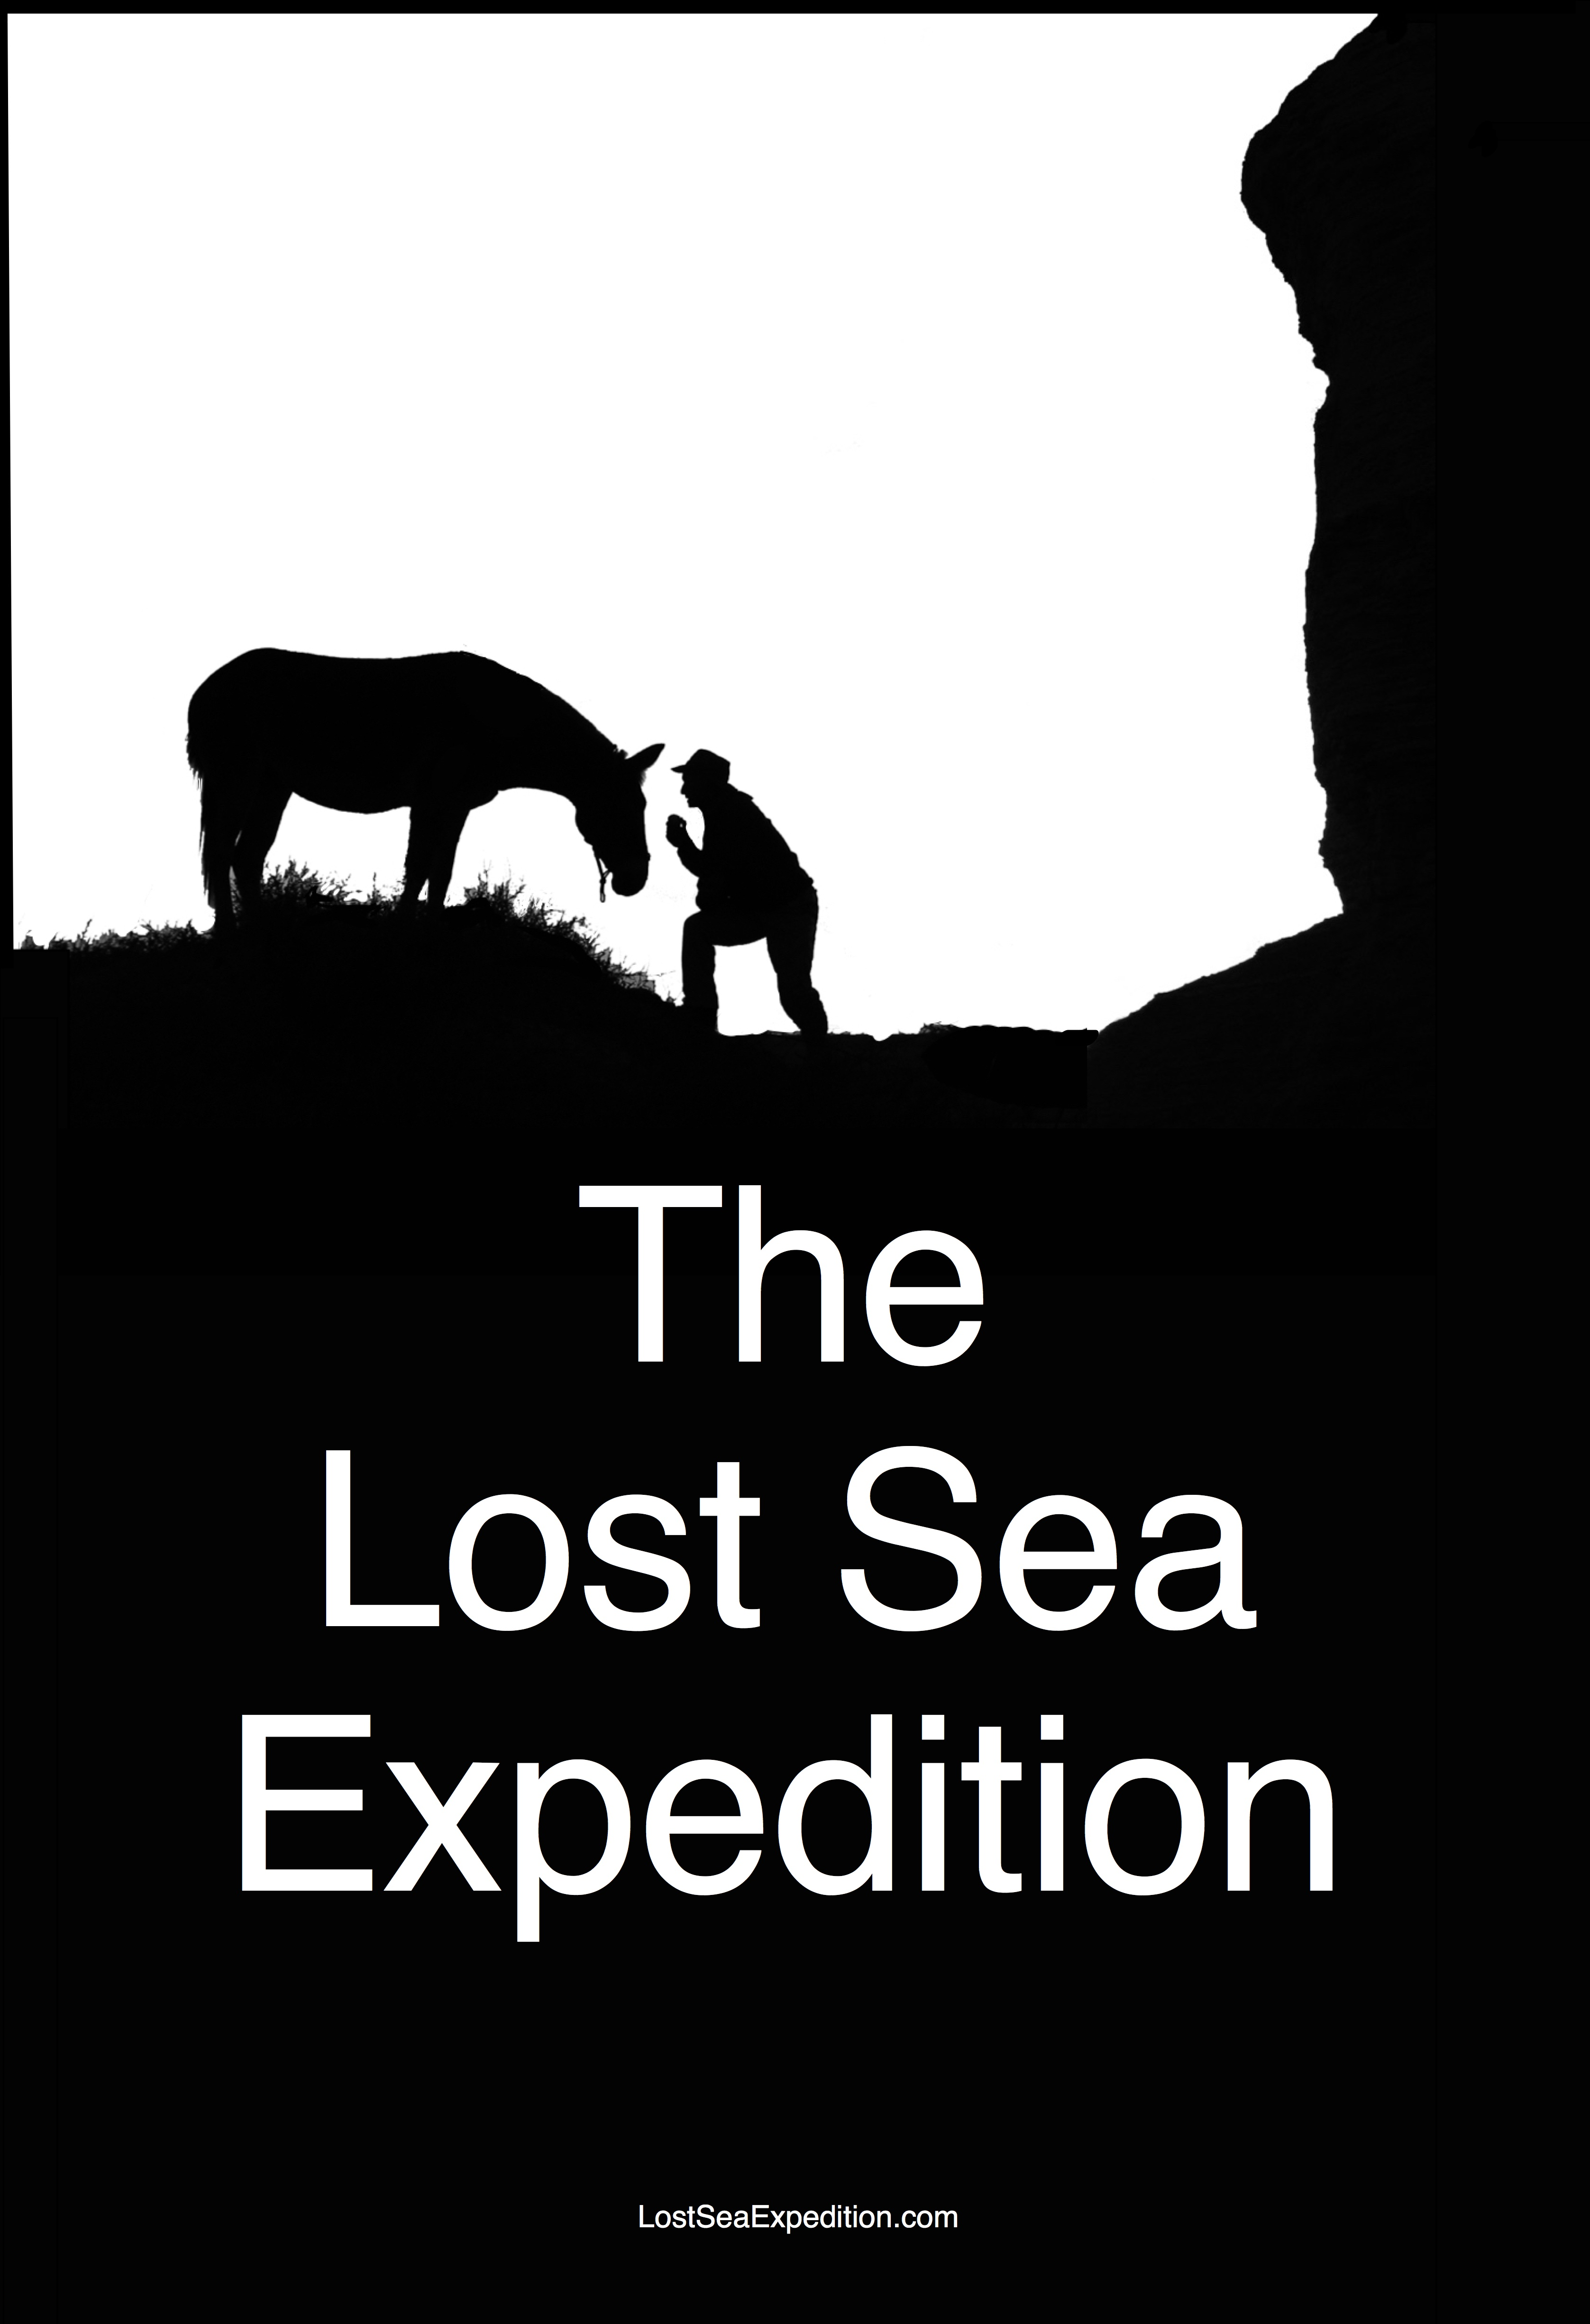 Each Lost Sea Expedition print is signed.